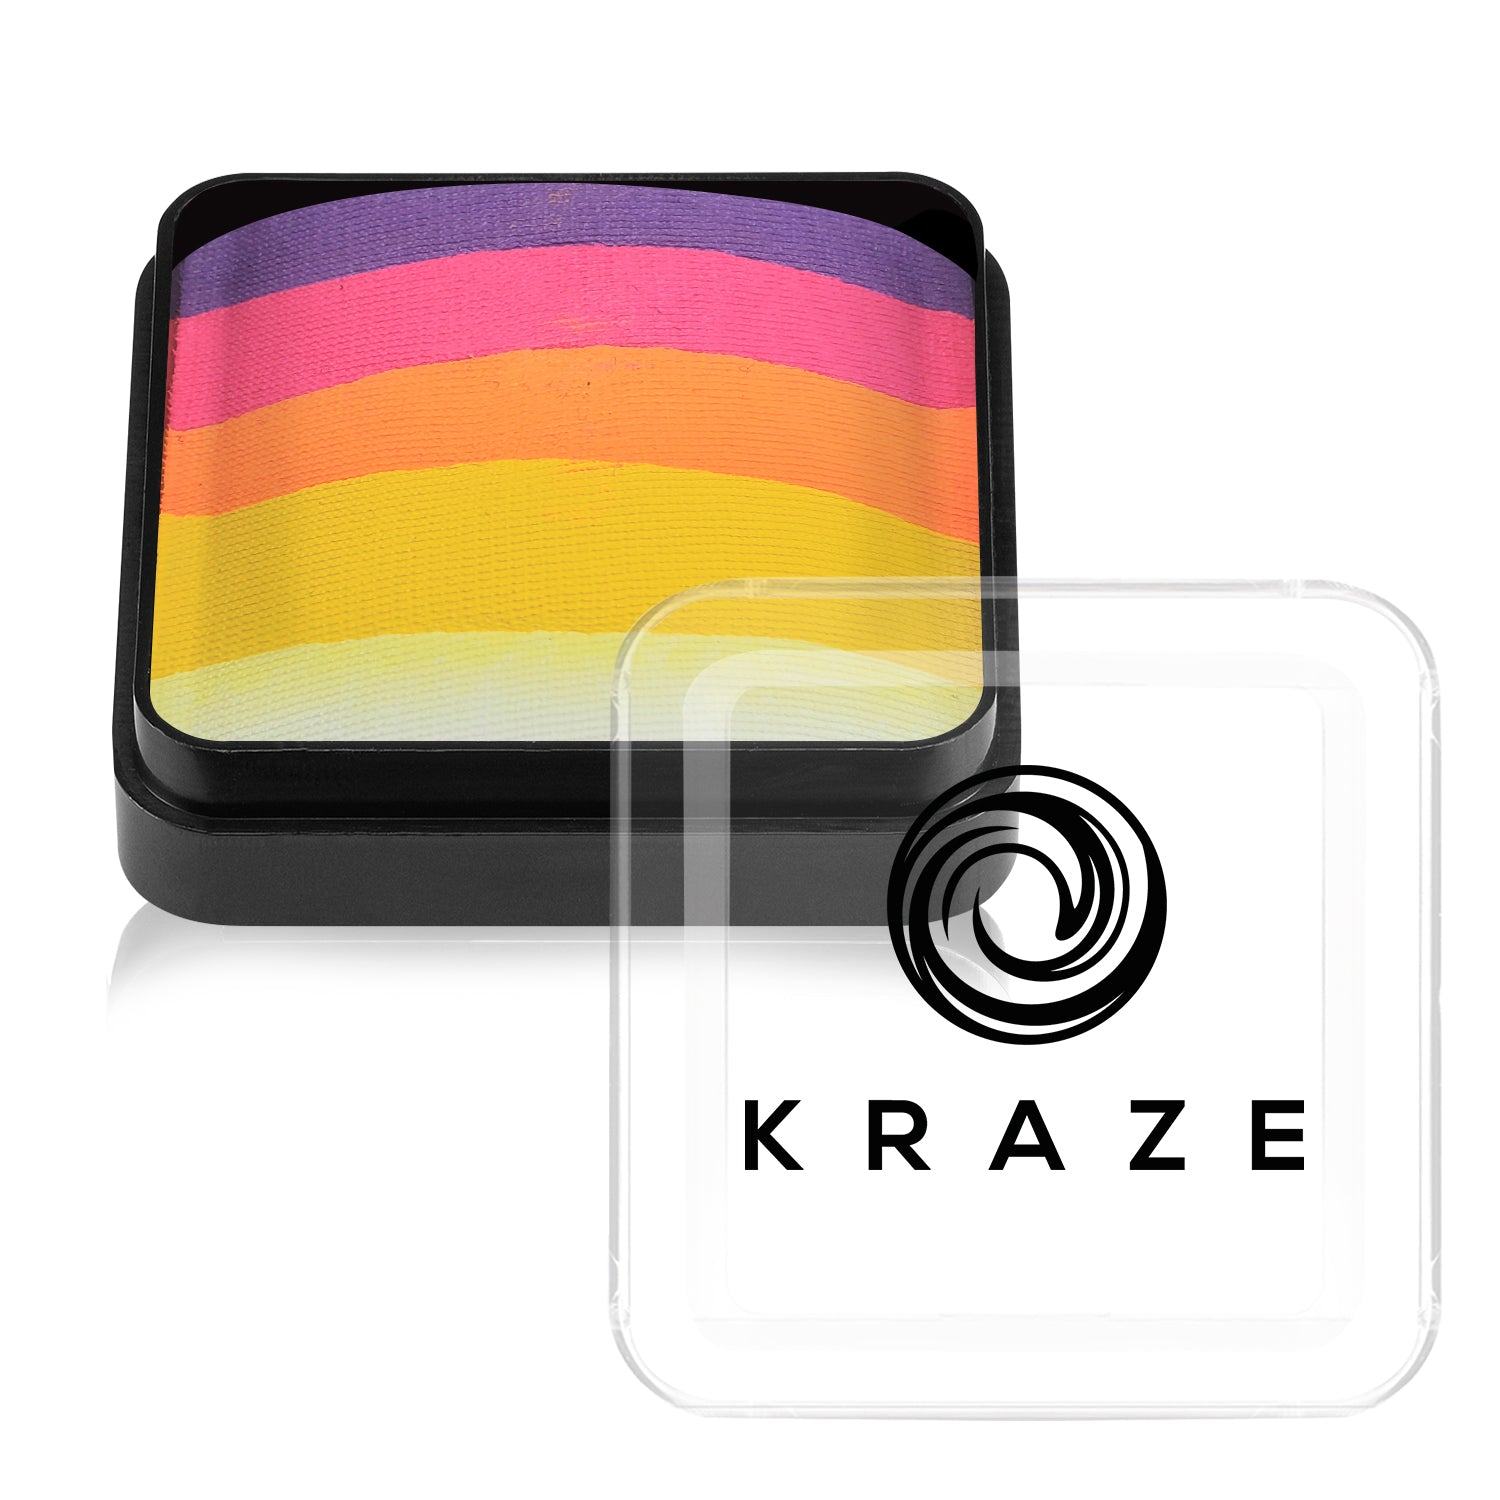 Kraze Neon Dome Cake - 25 gm - Hawaiian Sunrise